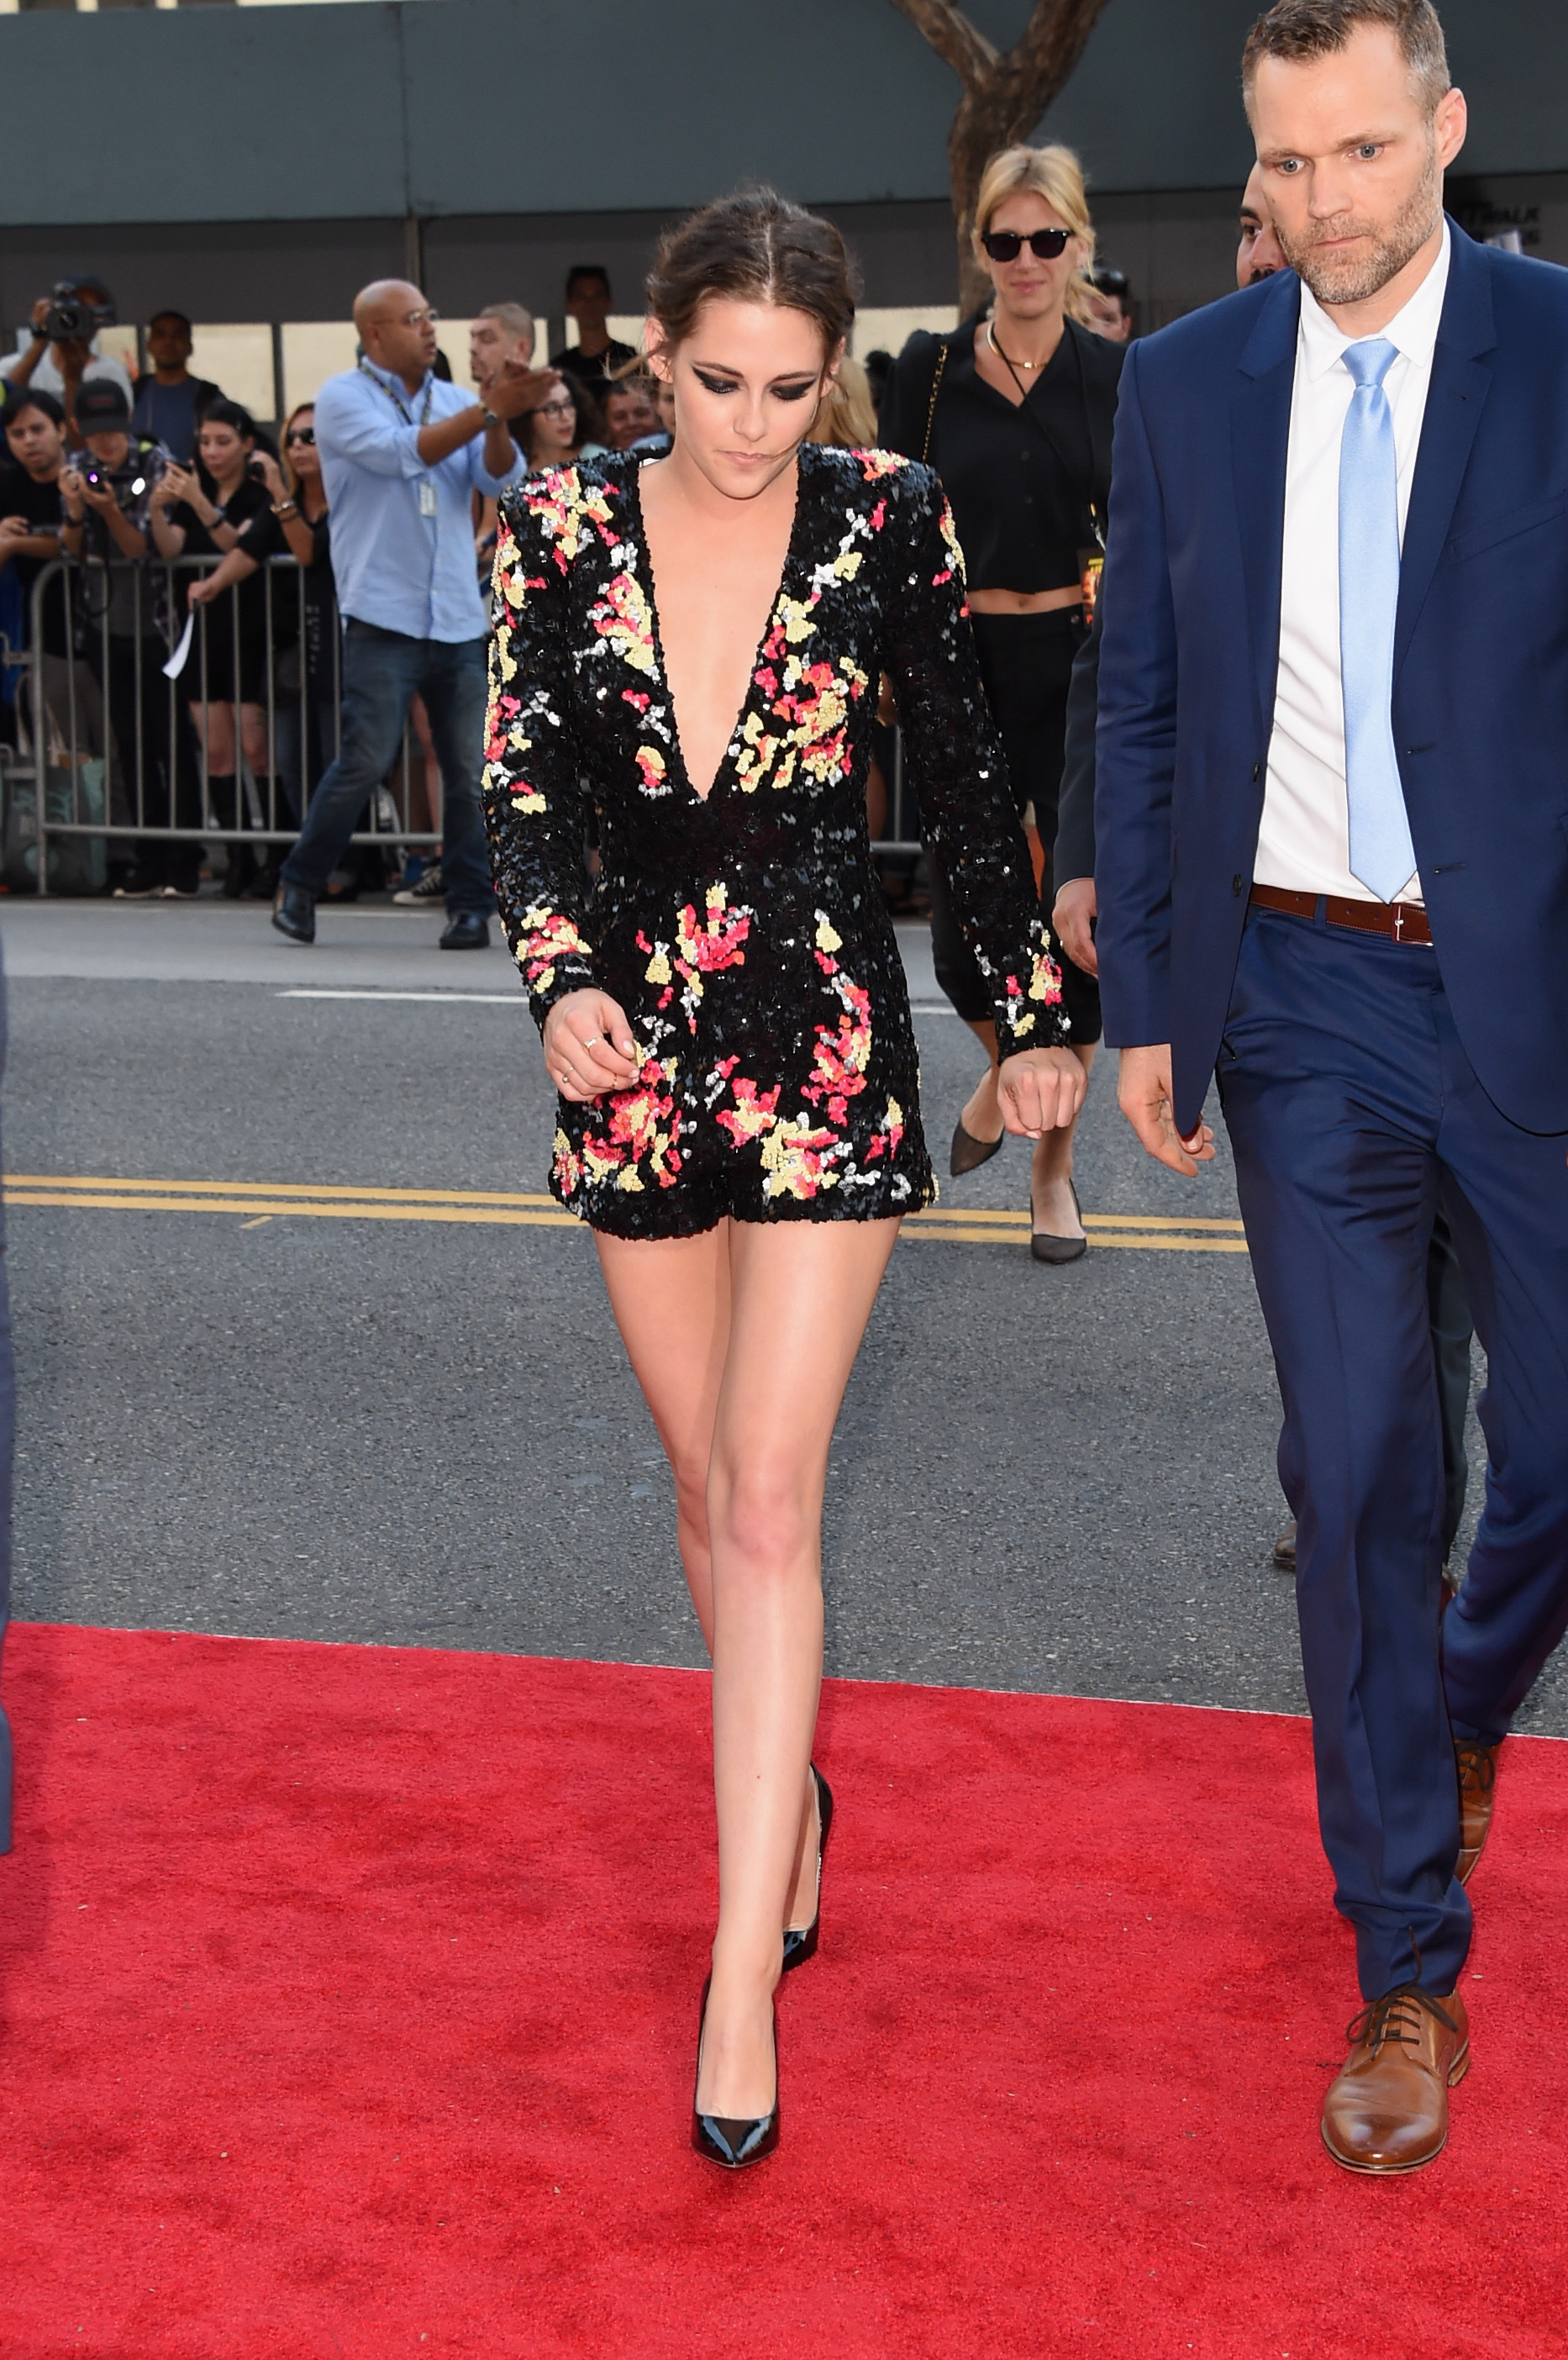 Kristen Stewart Decides to Eff It Takes Off Her Heels on the Red Carpet